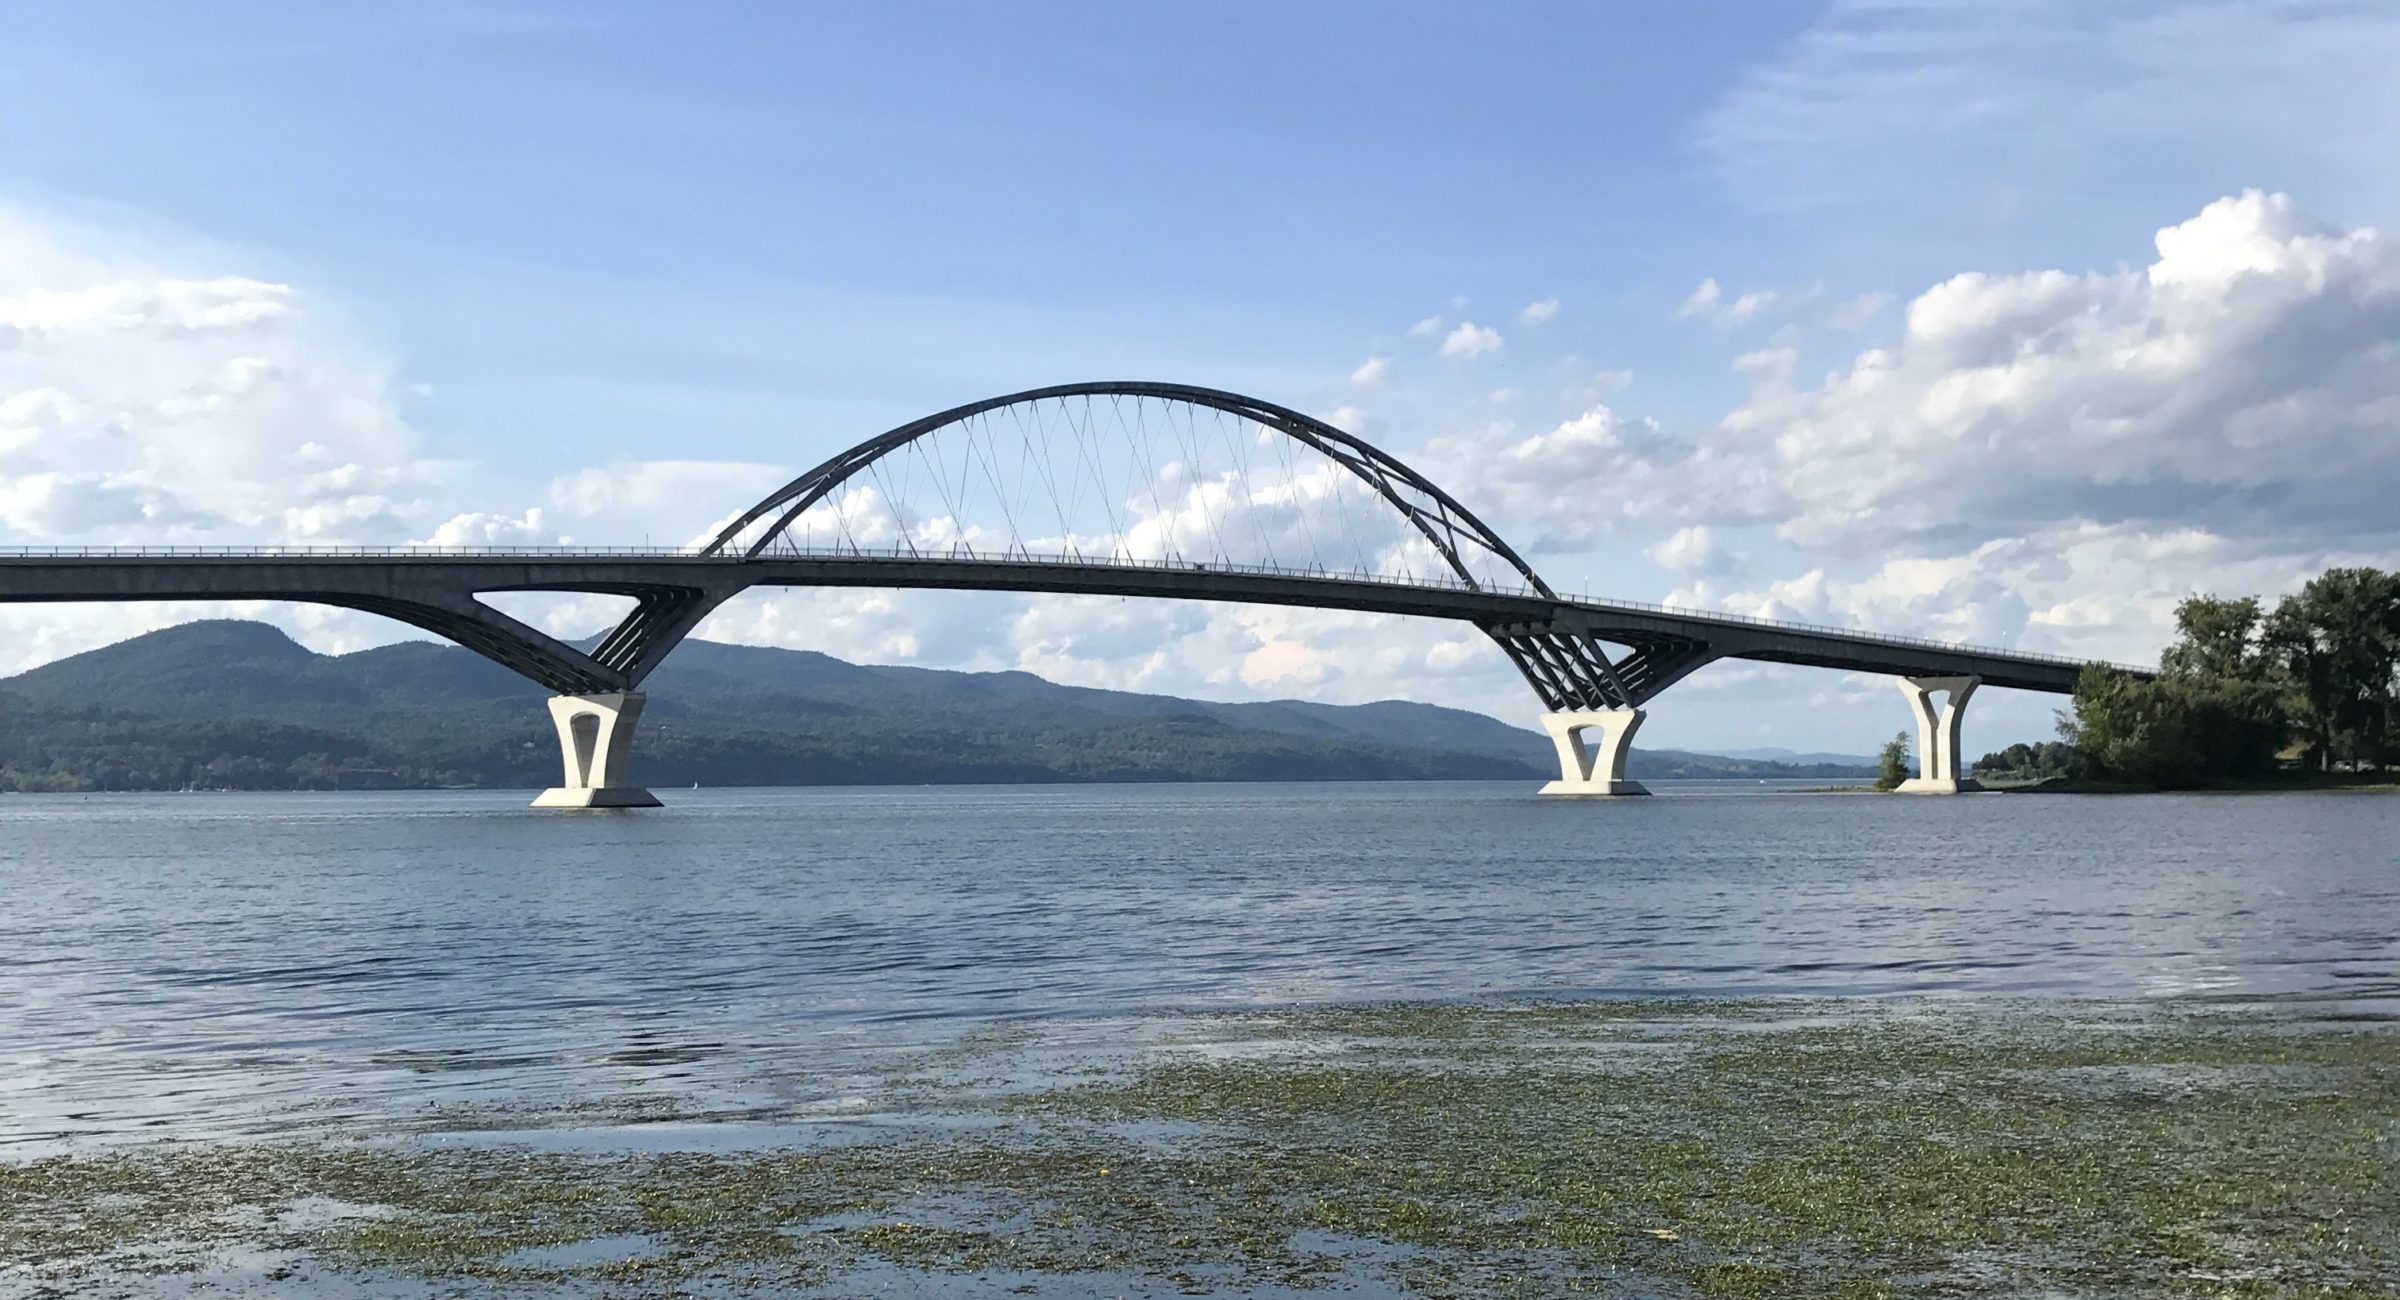 The Lake Champlain Bridge